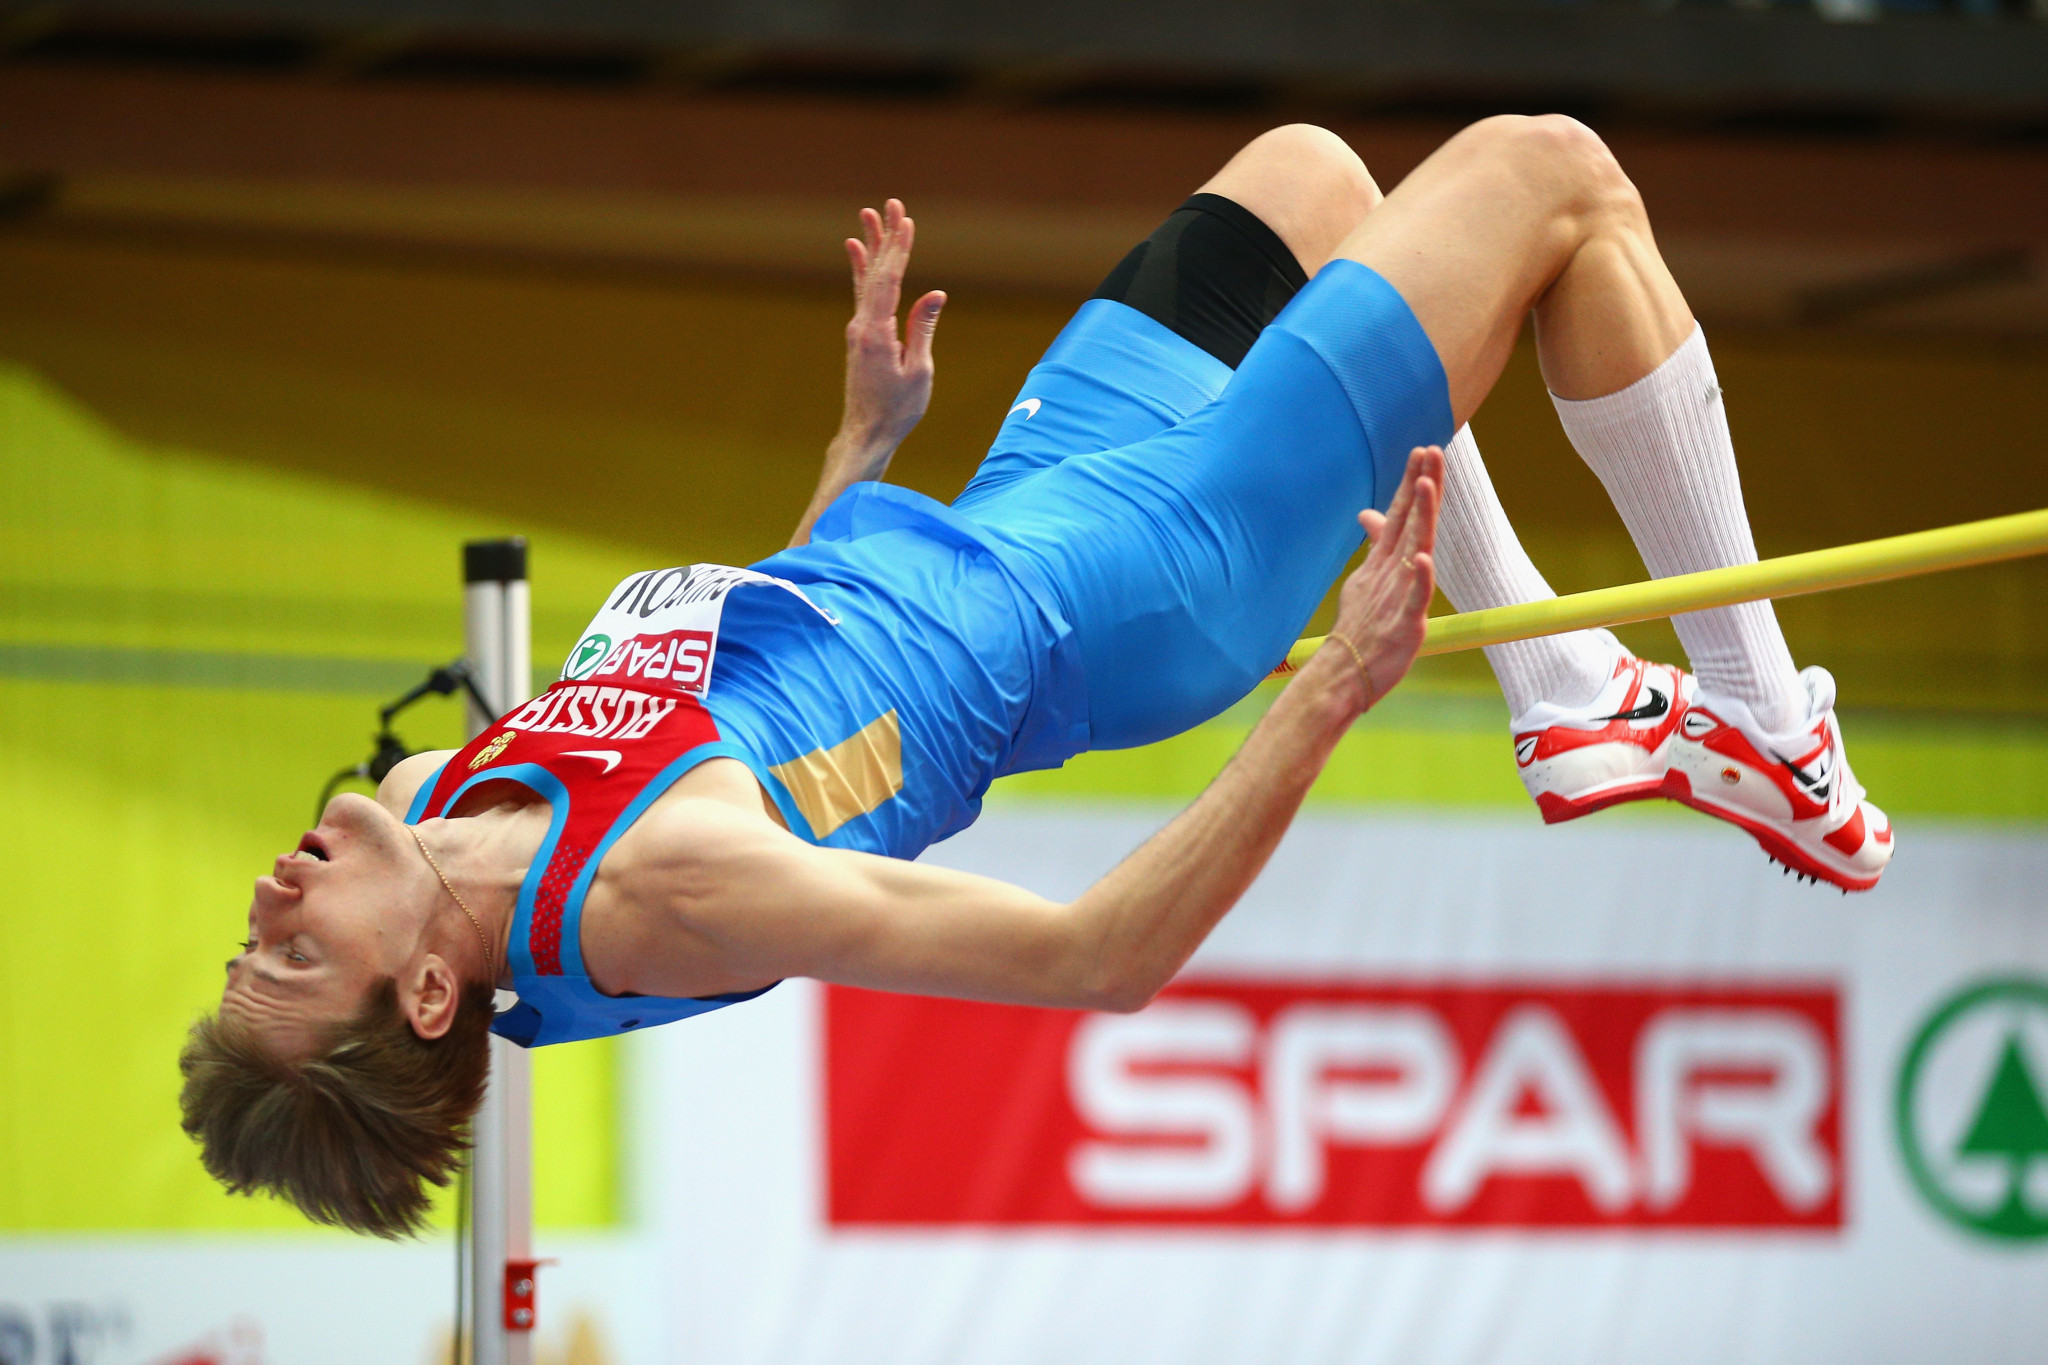 Russian high jumper Shustov given four-year ban over doping offence